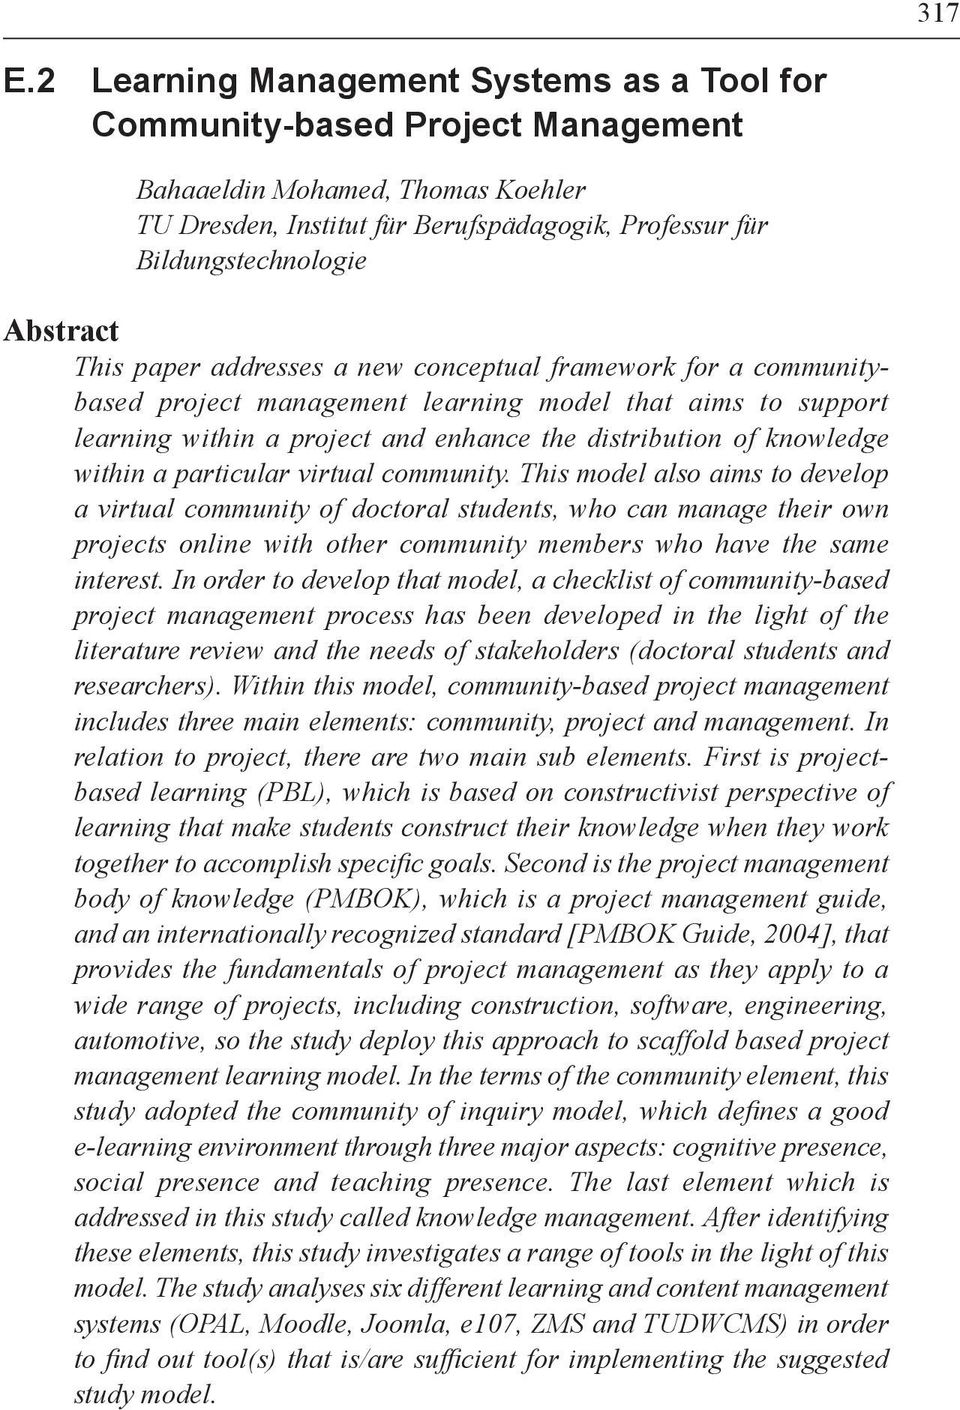 This paper addresses a new conceptual framework for a communitybased project management learning model that aims to support learning within a project and enhance the distribution of knowledge within